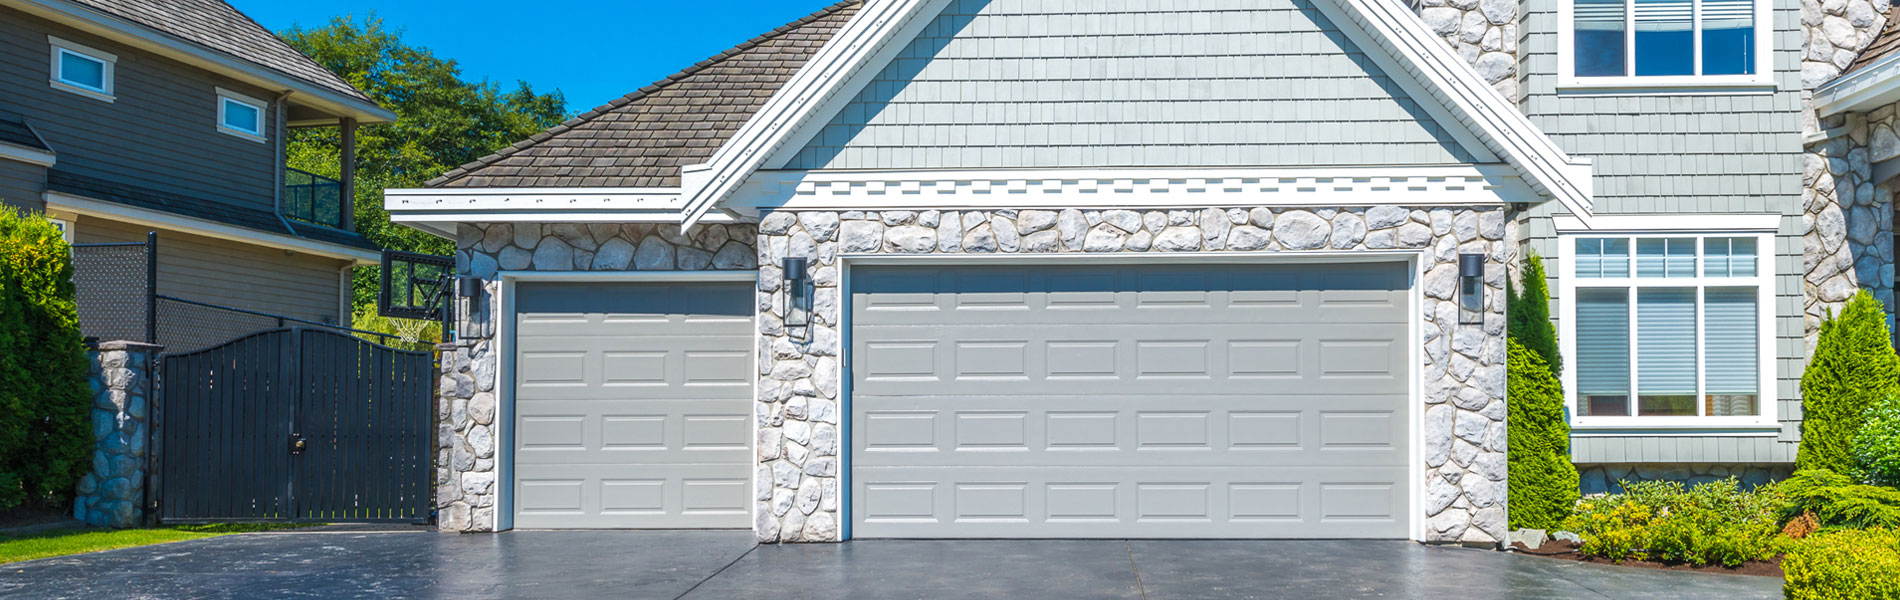 Eagle Garage Door Princeton, MA 978-254-6645